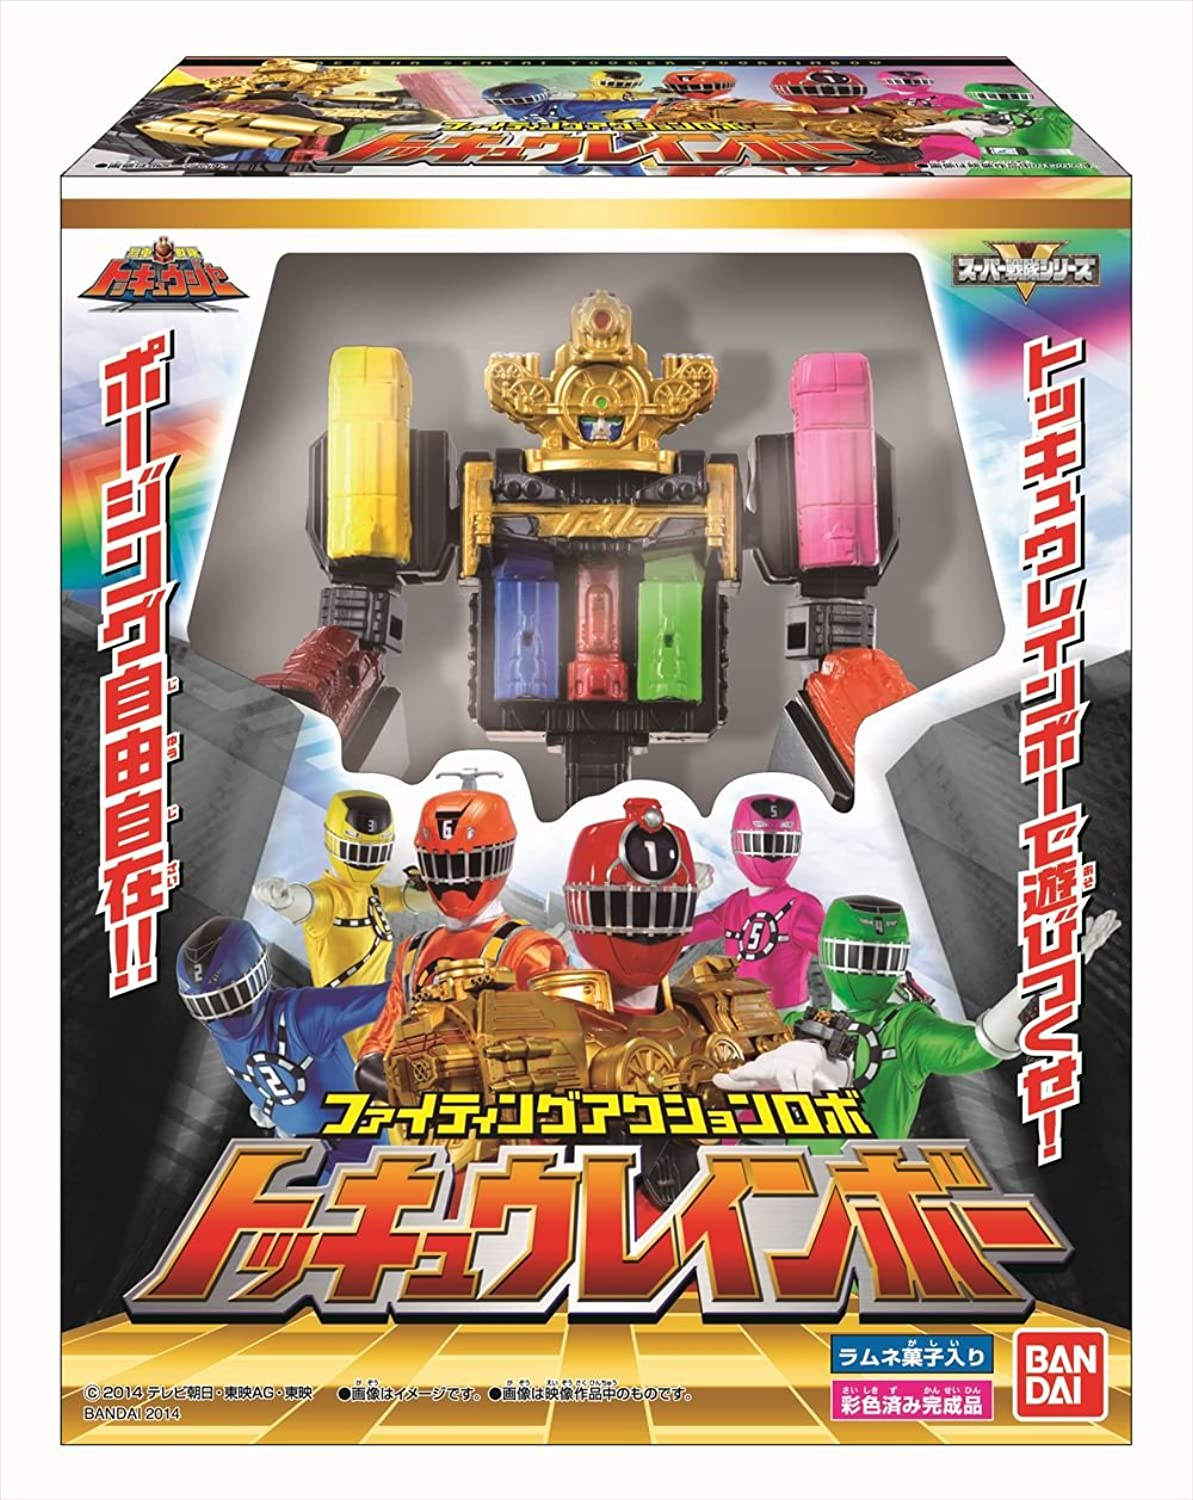 Fighting Action Robo limited express Rainbow 1 pcs (Candy Toys & soft confectionery)